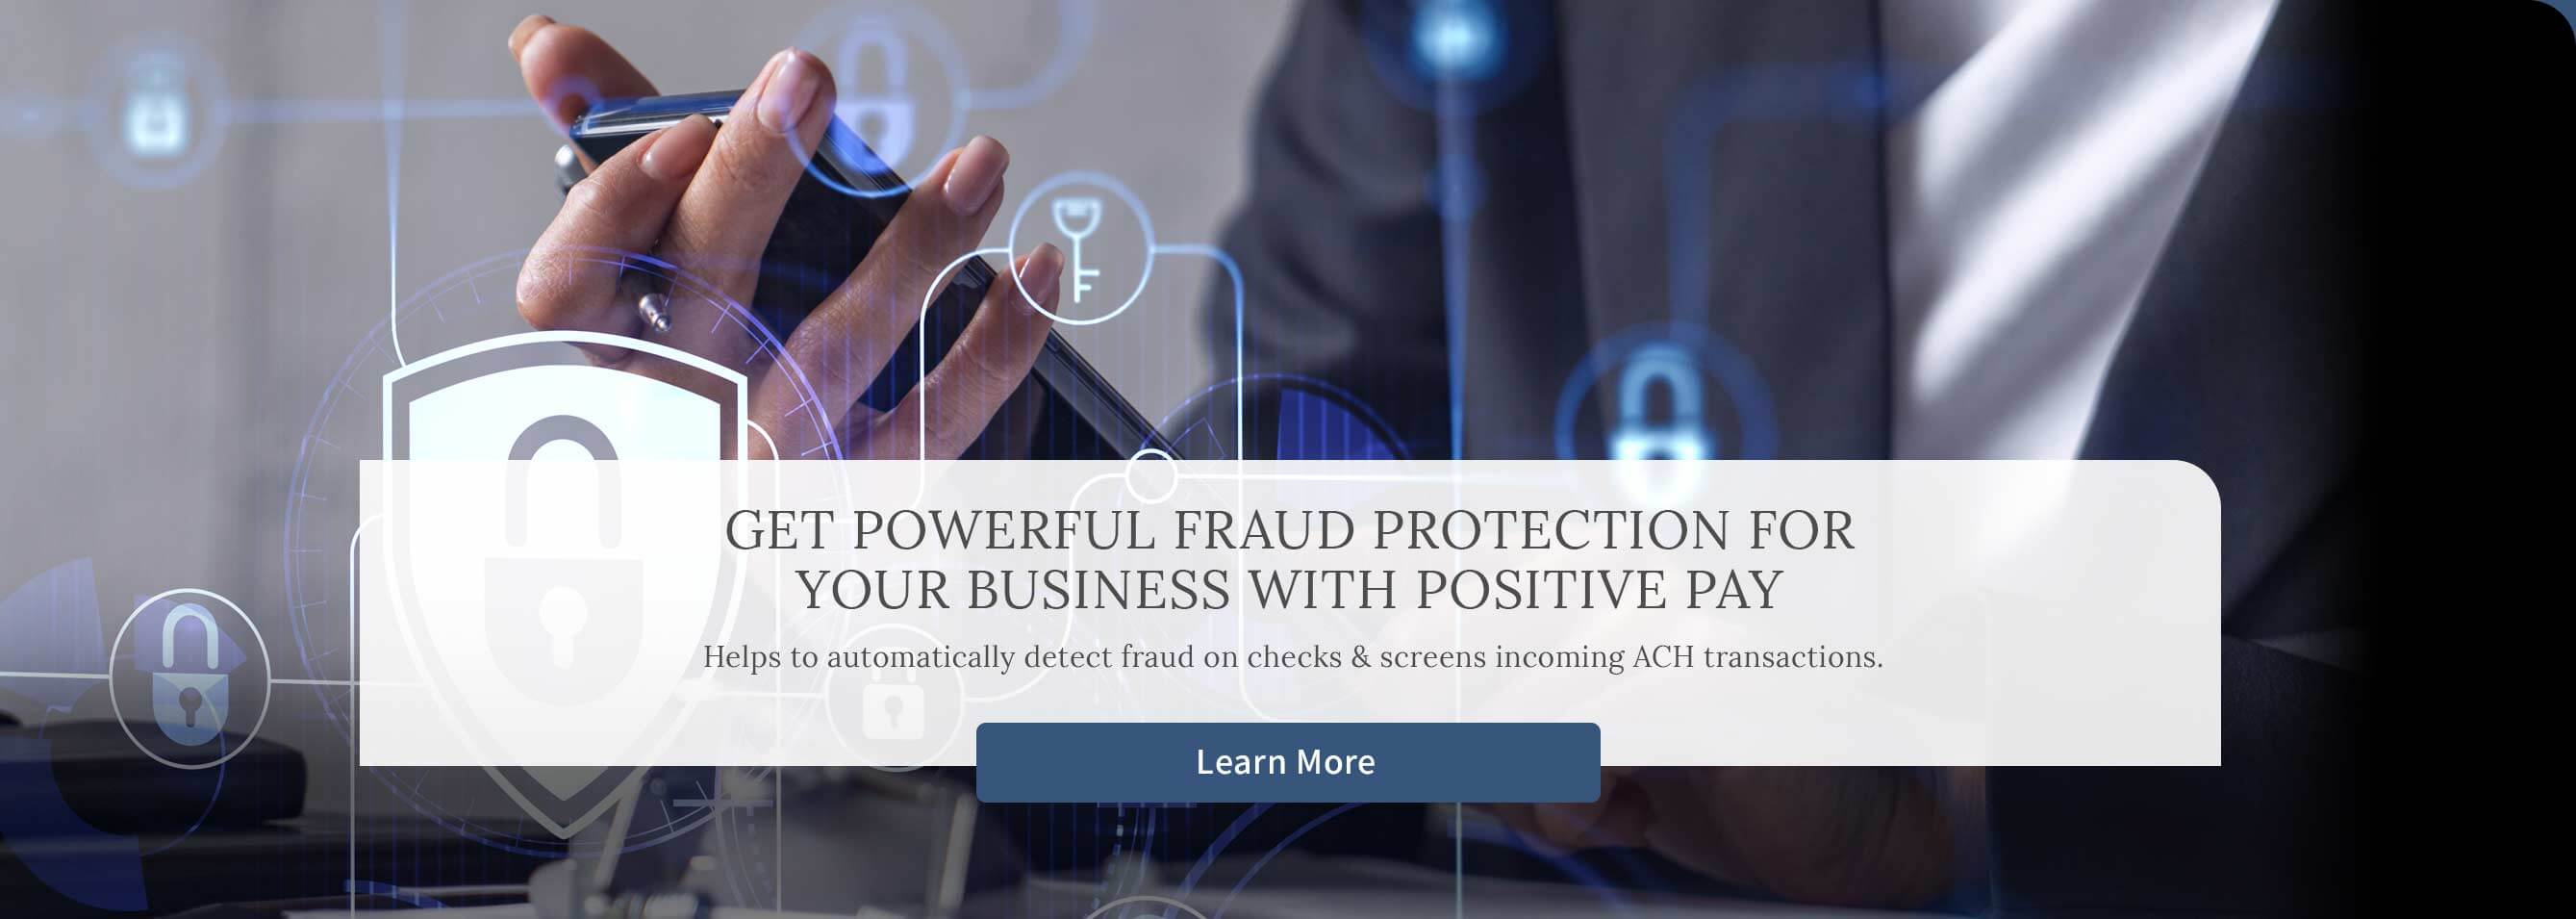 Get powerful fraud protection for your business with positive pay. Helps to automatically detect fraud on checks & screens incoming ACH transactions. Learn More